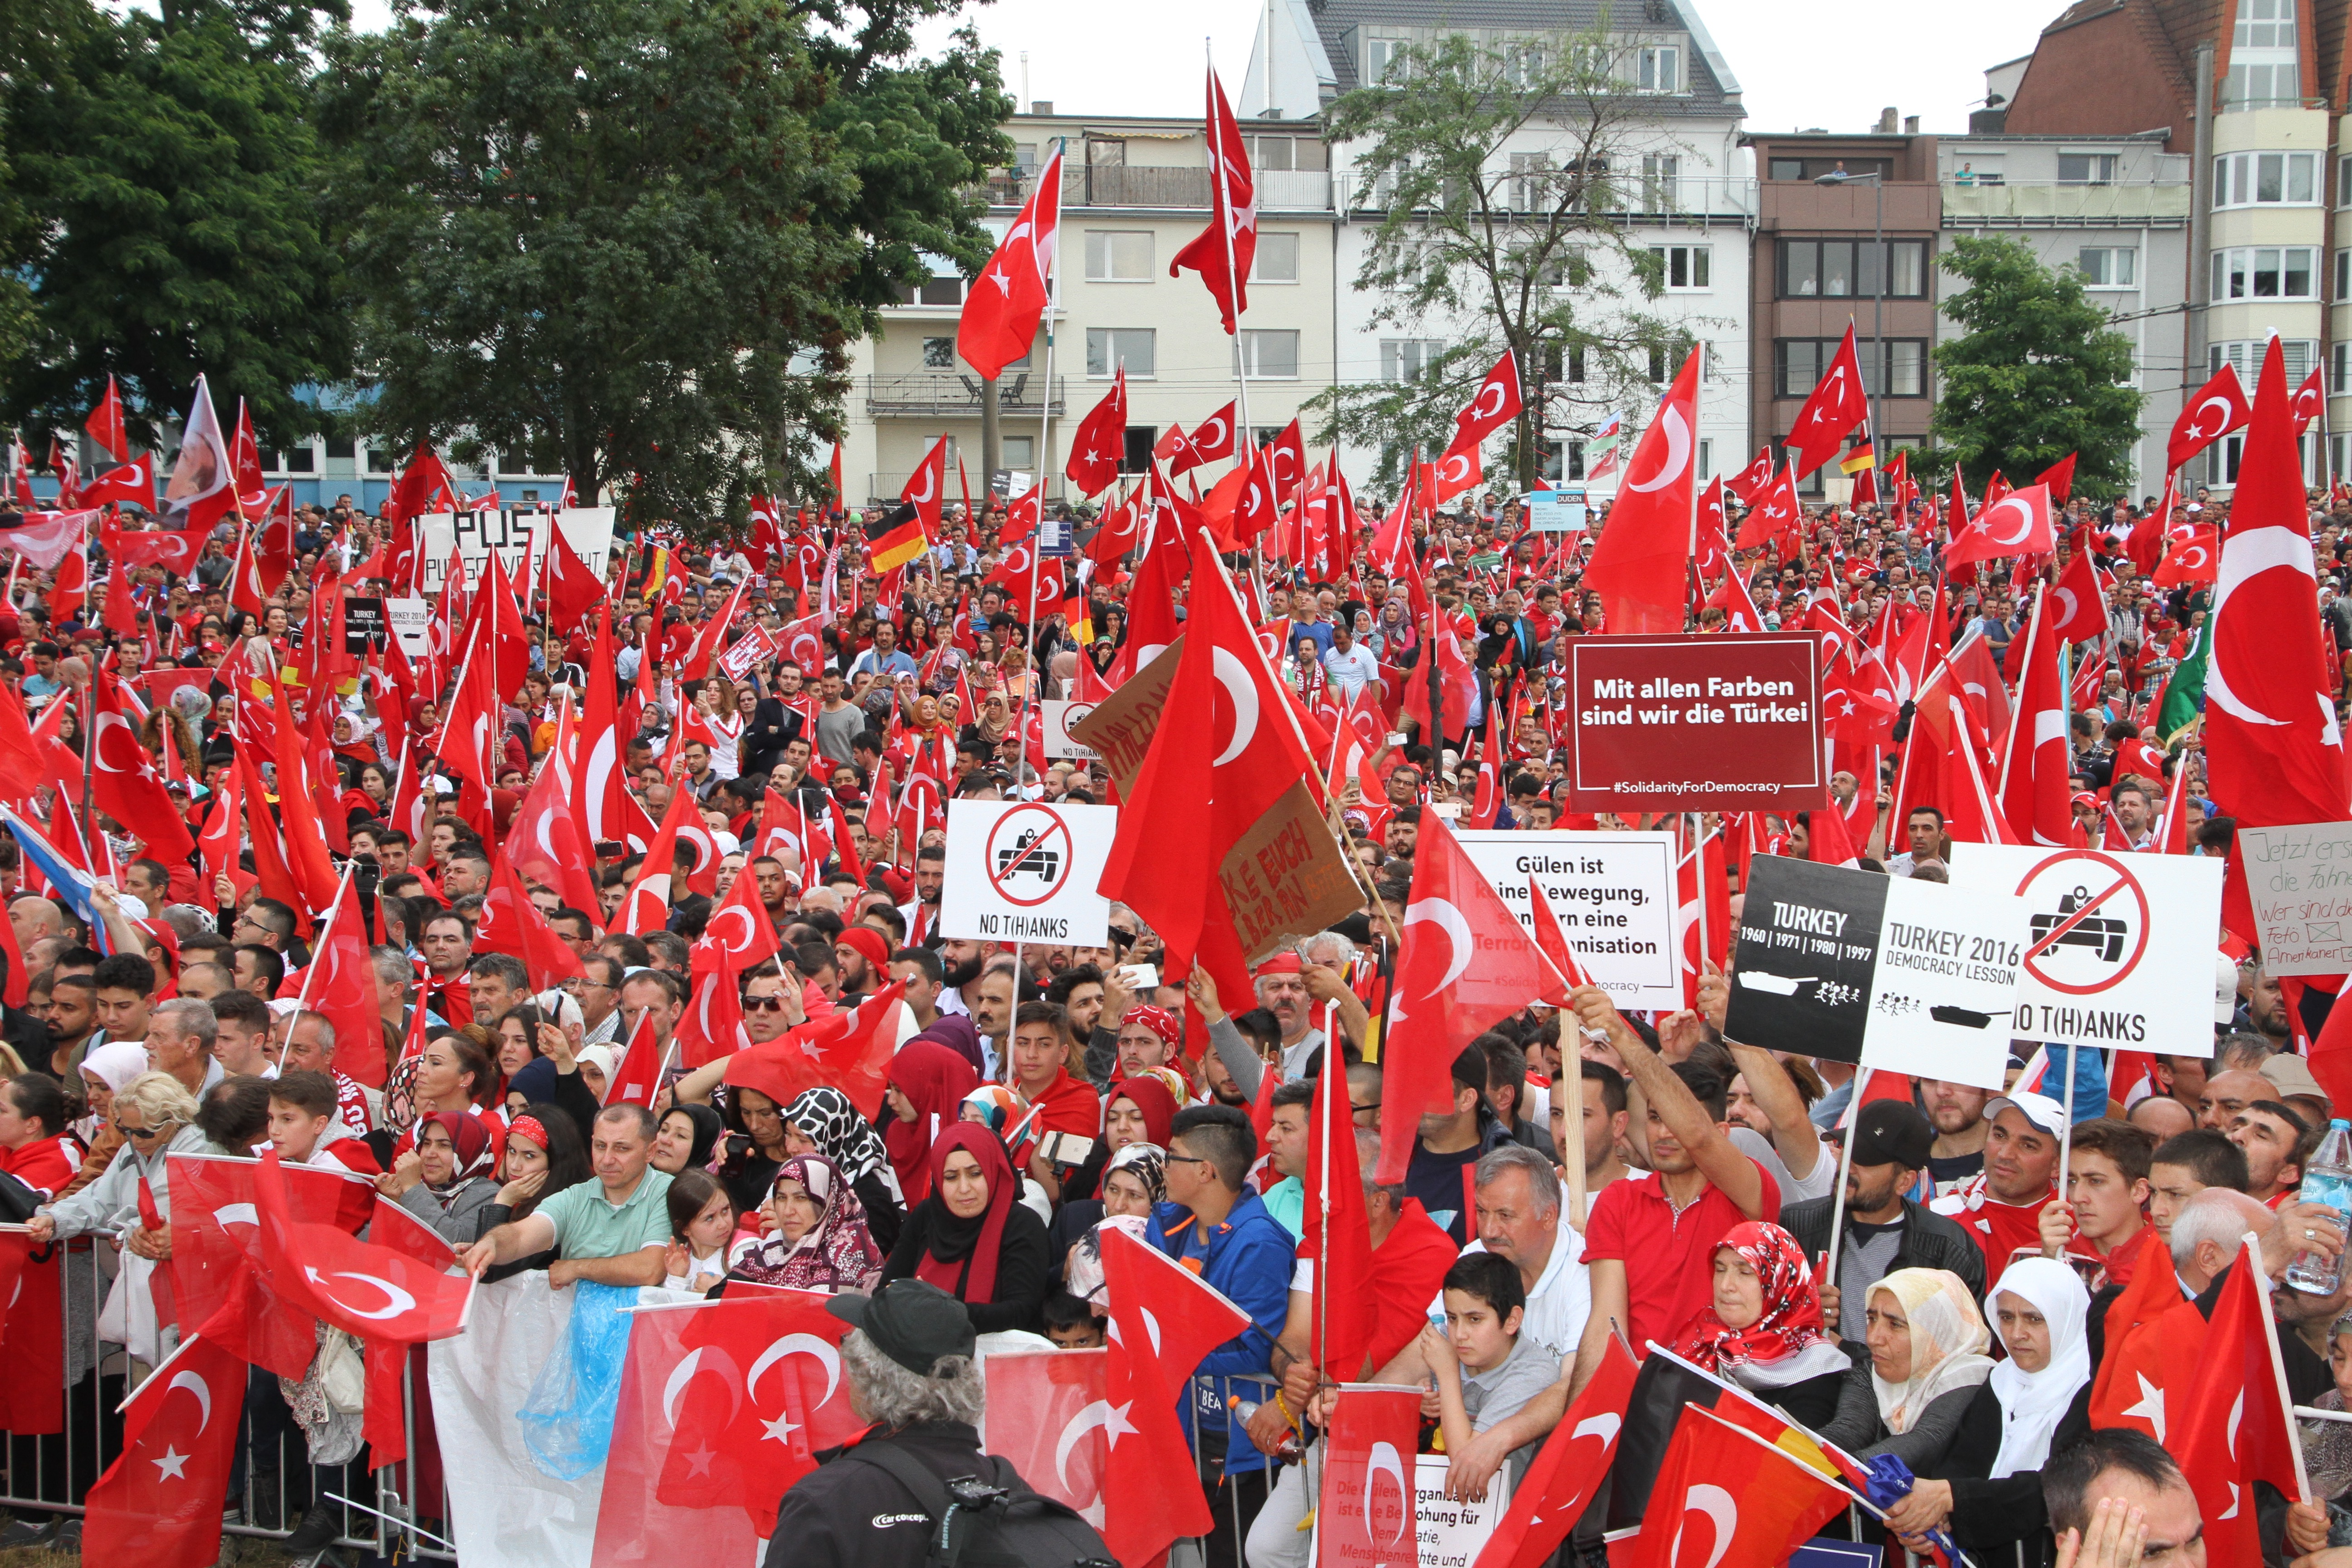 Turks in Germany - a time bomb